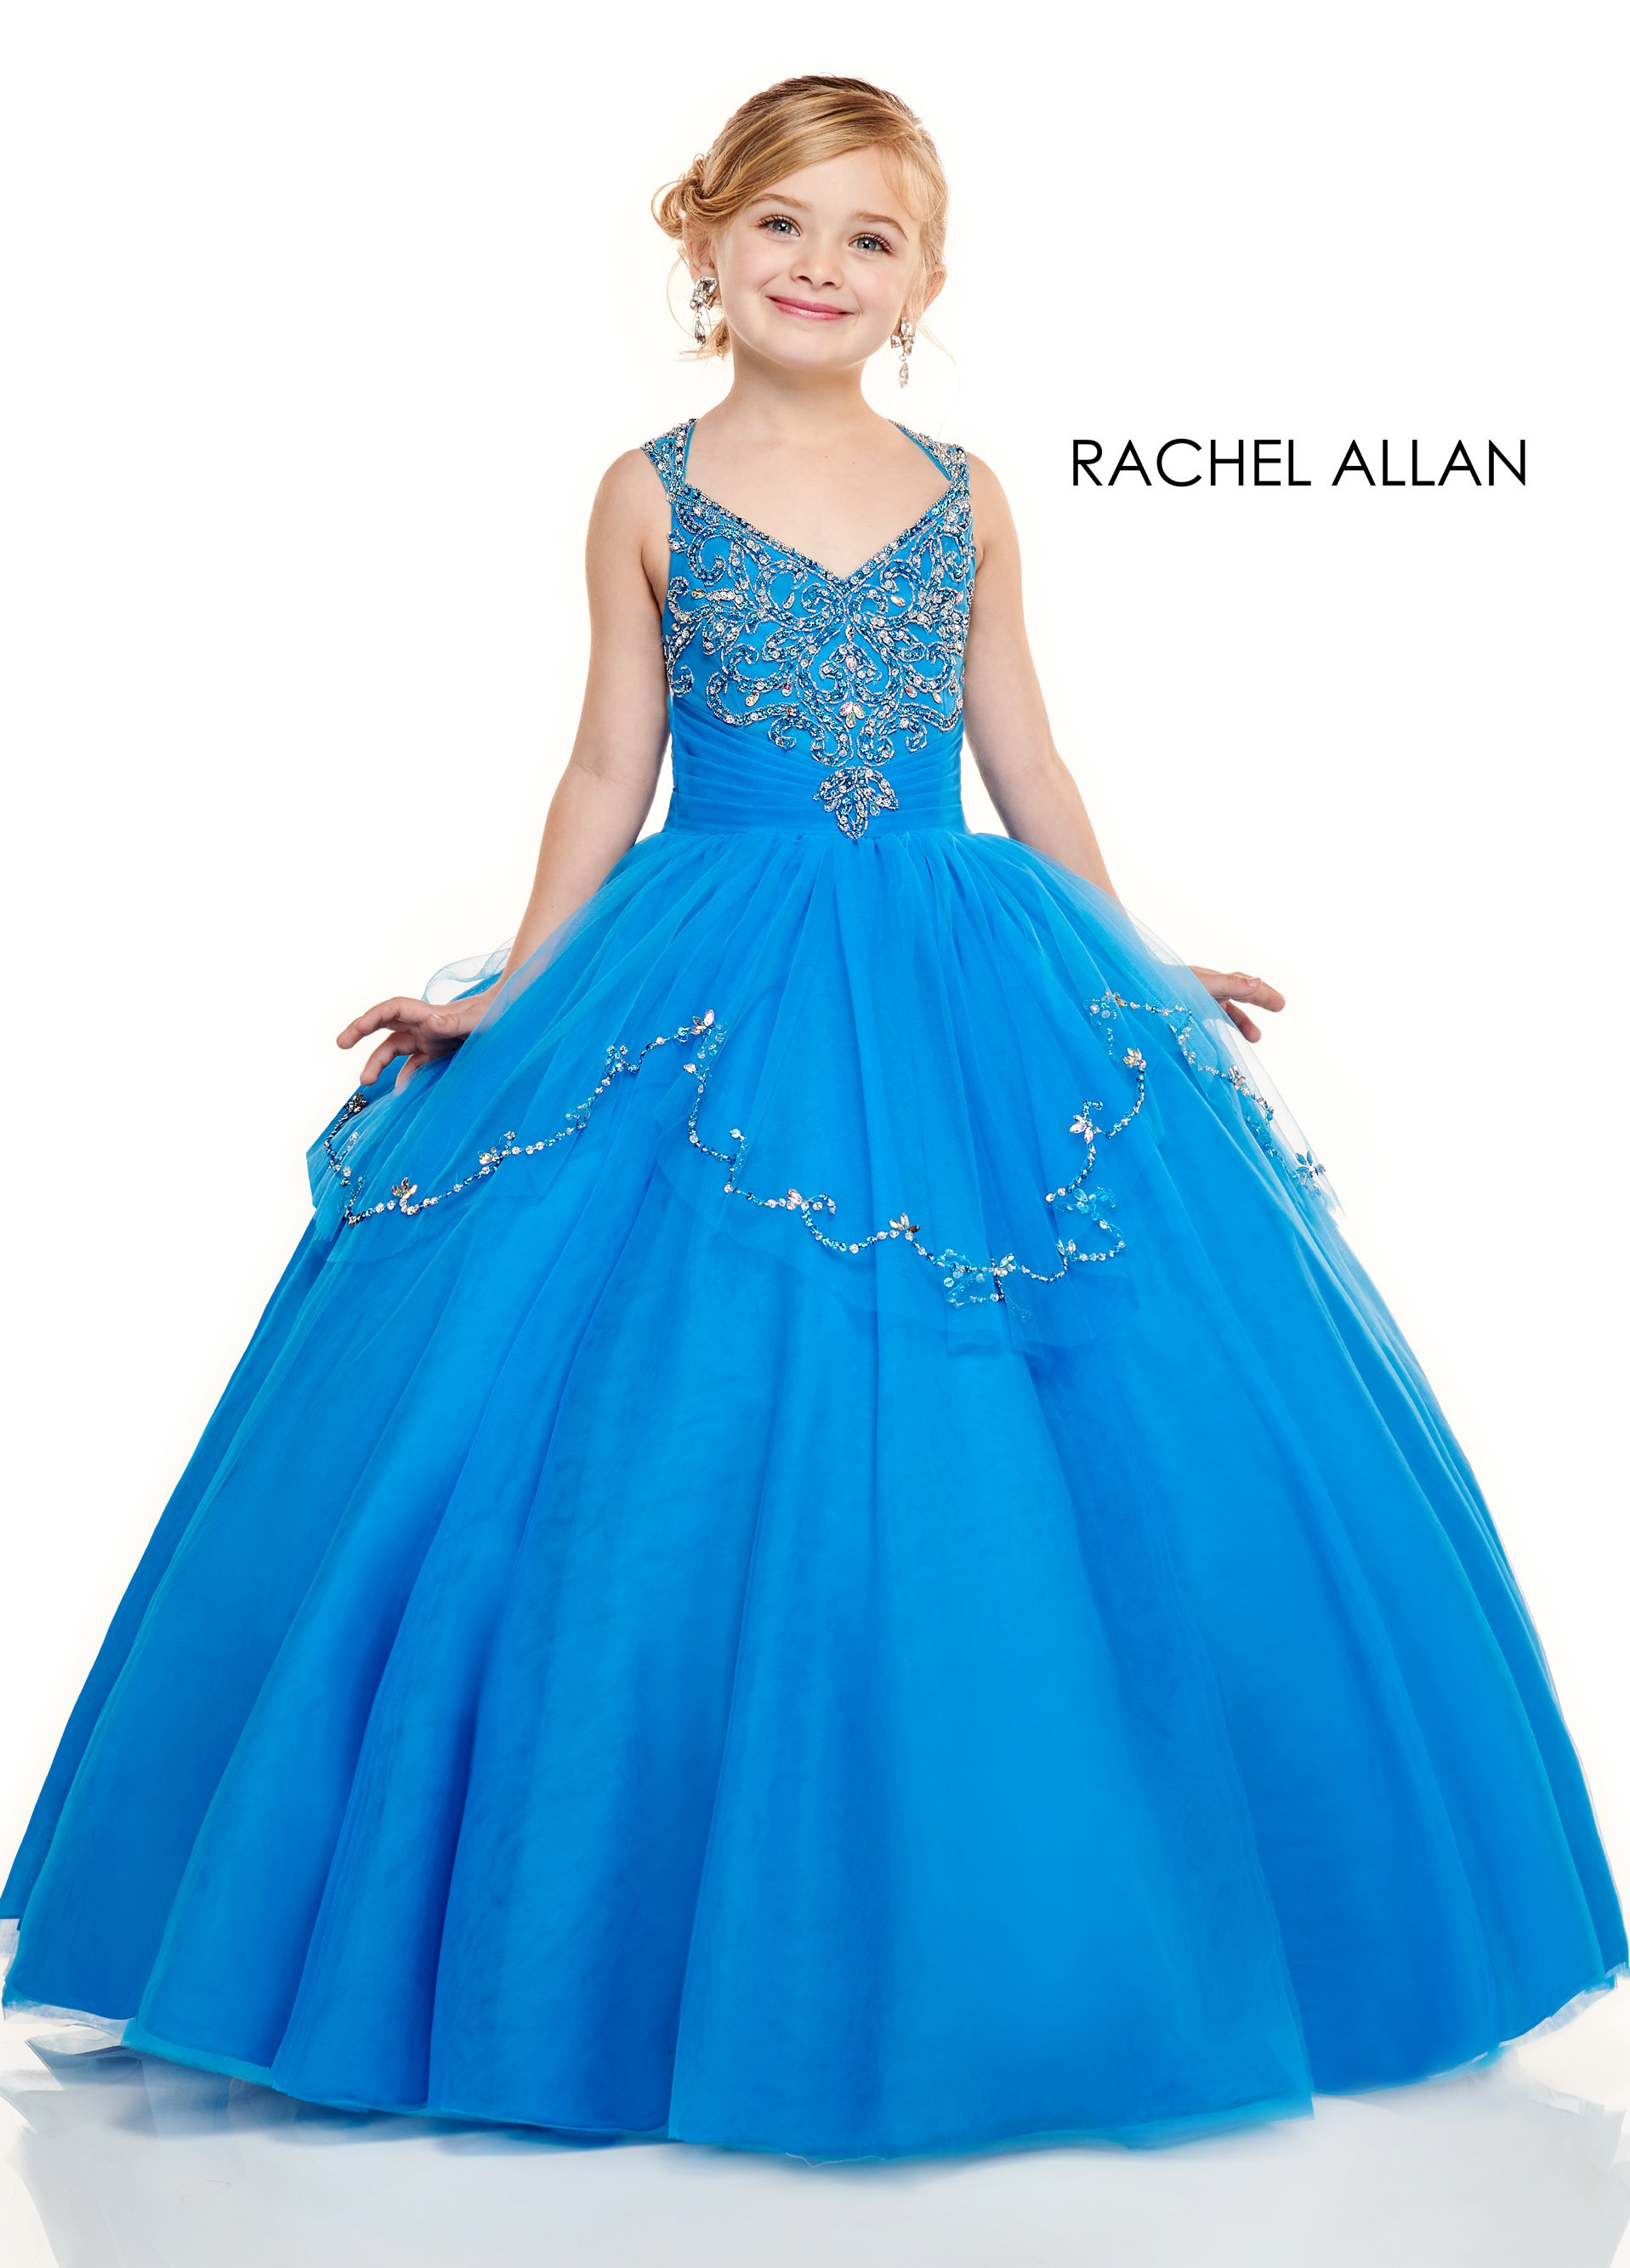 V-Neck Ball Gowns Little Girl Pageant Dresses in Blue Color